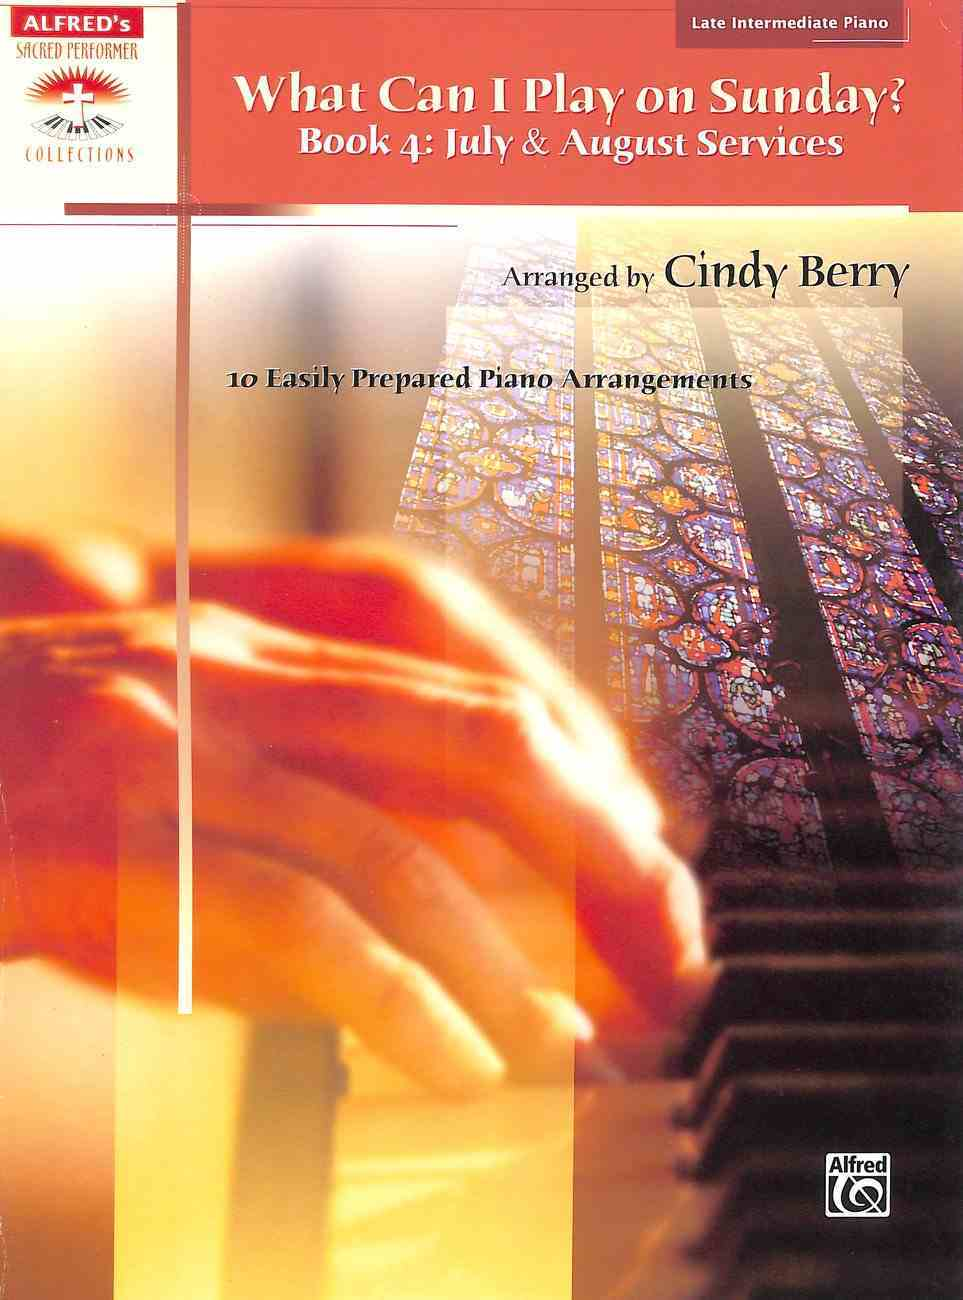 What Can I Play on Sunday? Book 4: July & August Services, 10 Easily Prepared Piano Arrangements (Late Intermediate Piano) (Music Book) Paperback